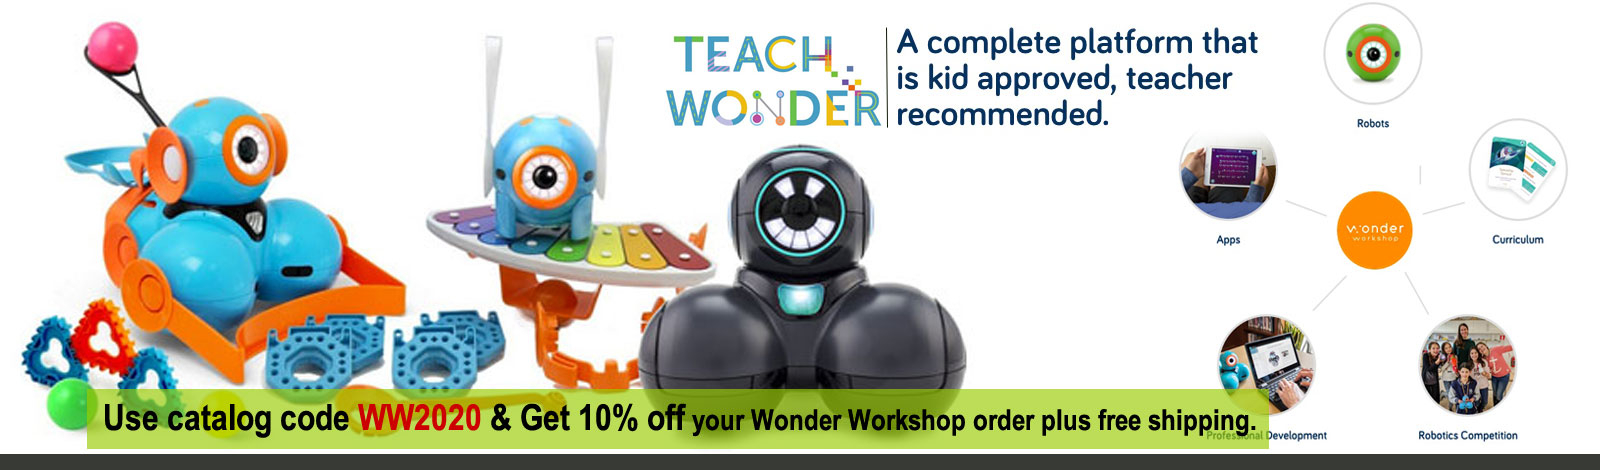 Make Wonder with Dash, Dot and Cue